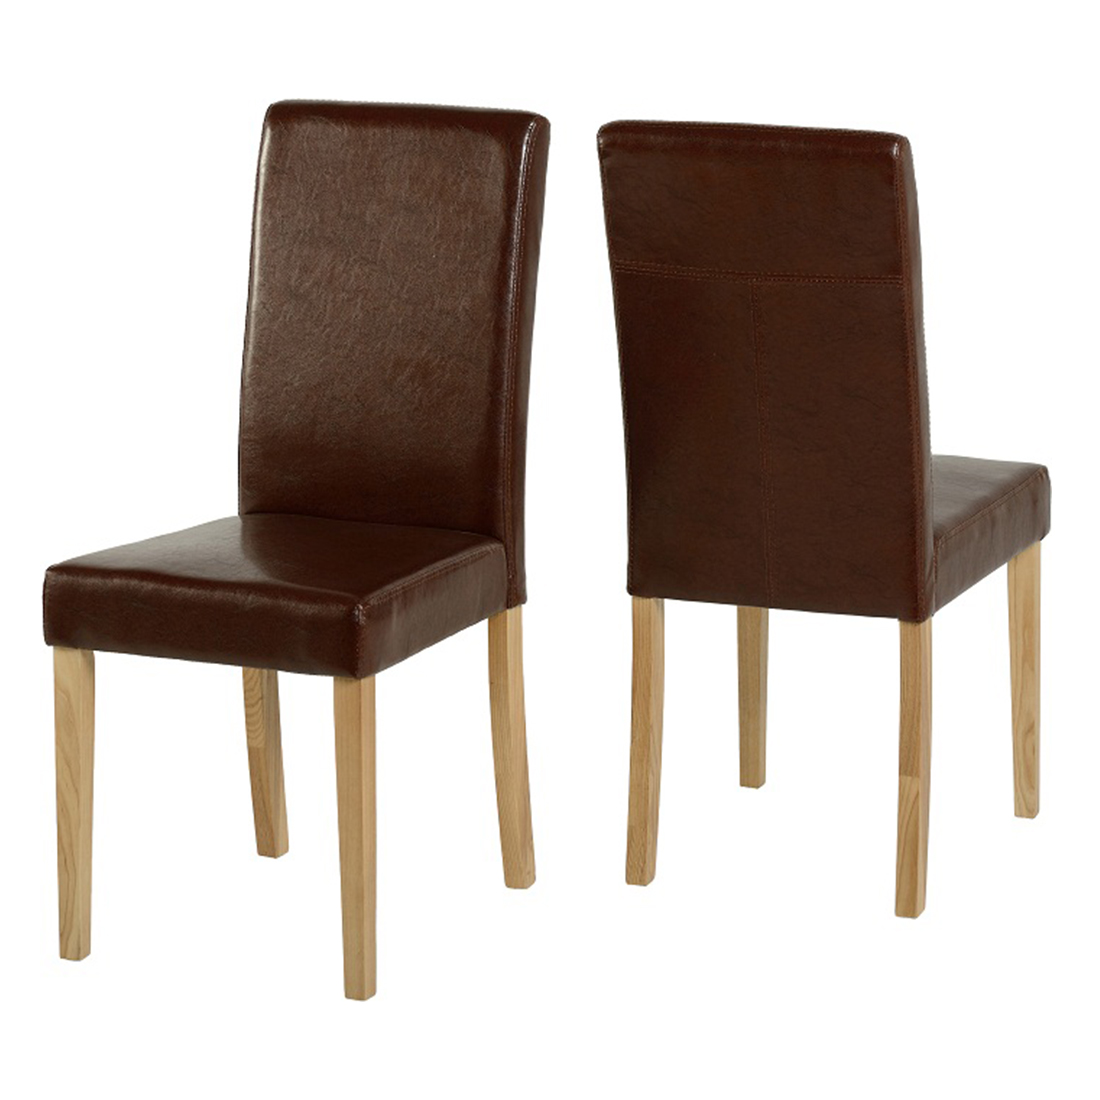 Paris faux leather dining chairs in mid brown devoted2home for Faux leather dining chairs